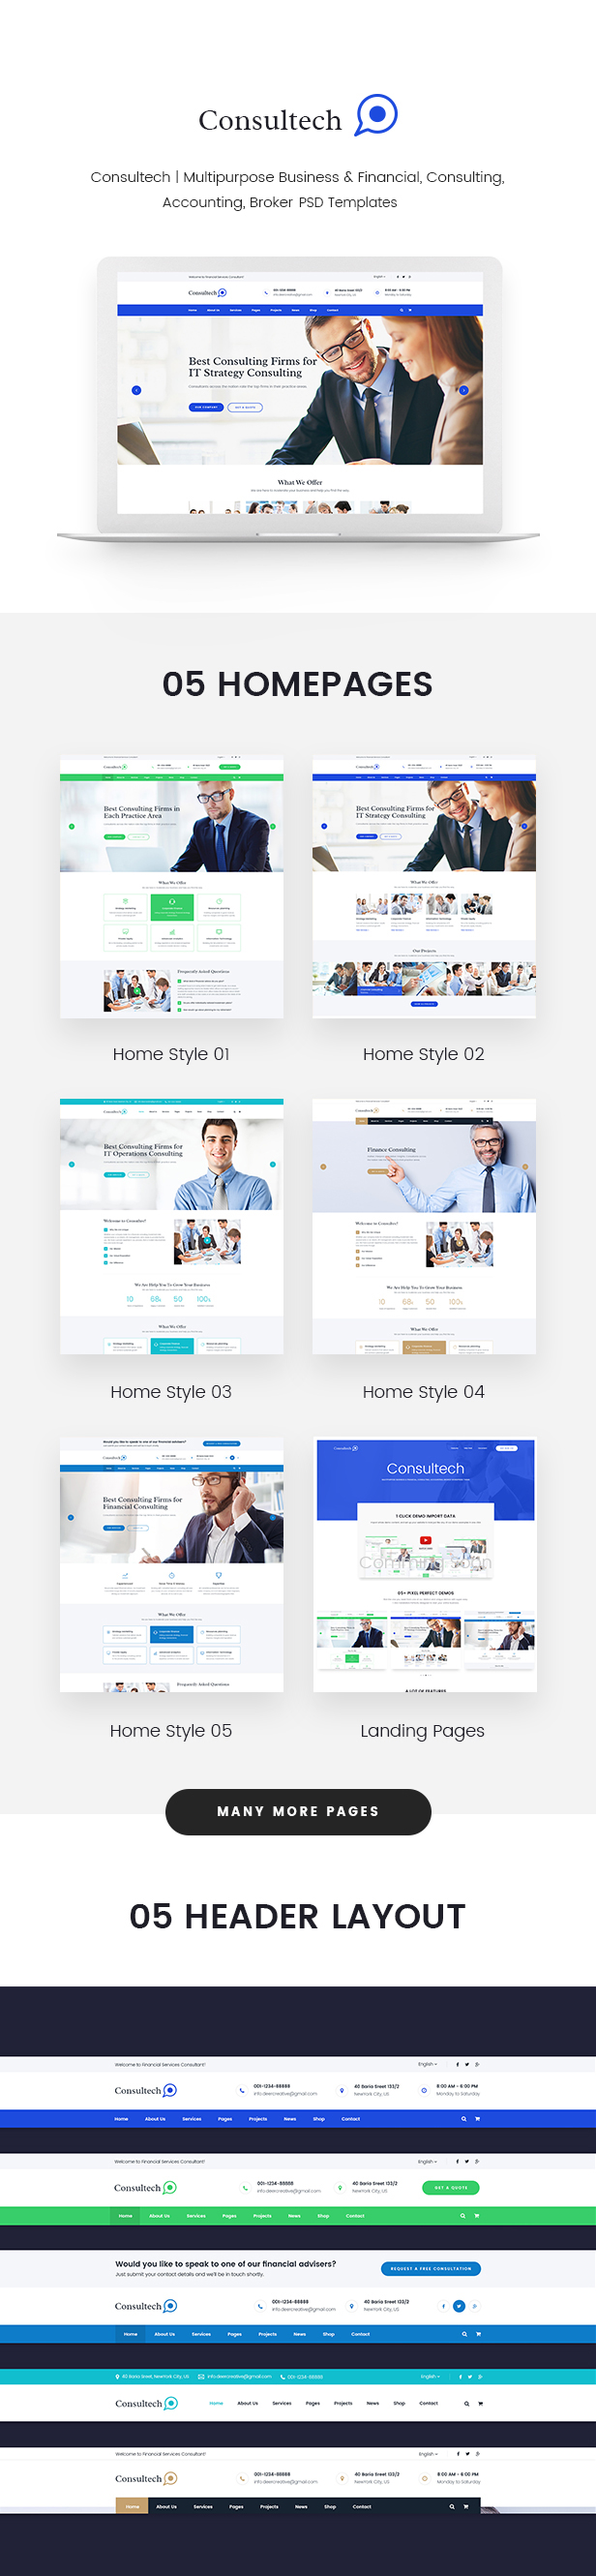 Consultech | Multipurpose Business & Financial, Consulting, Accounting, Broker Psd Templates - 2